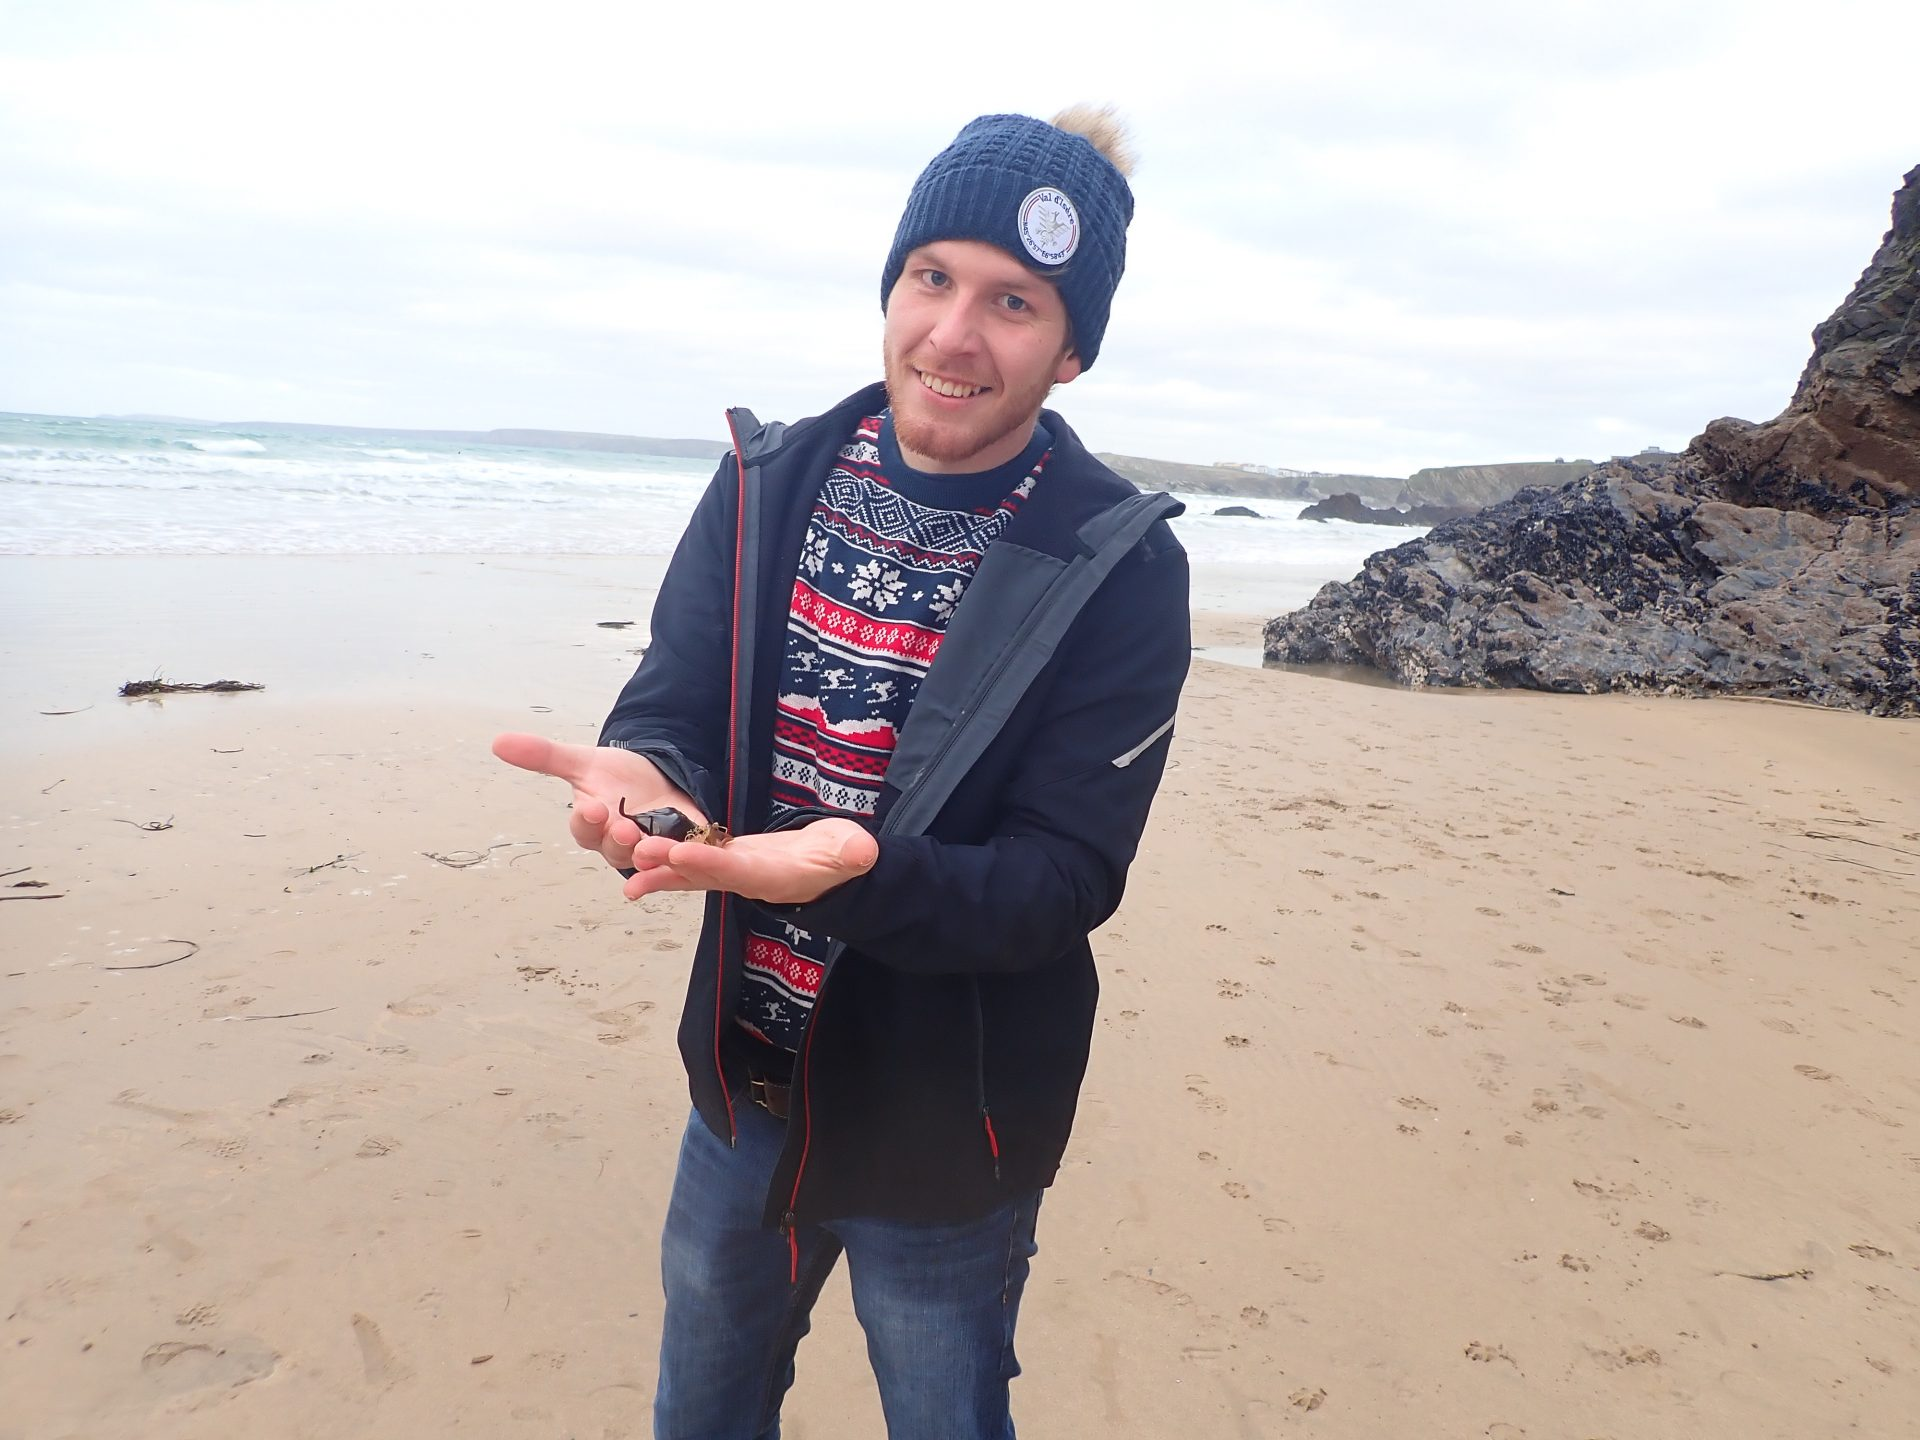 Newquay students reach shark app crowdfund target